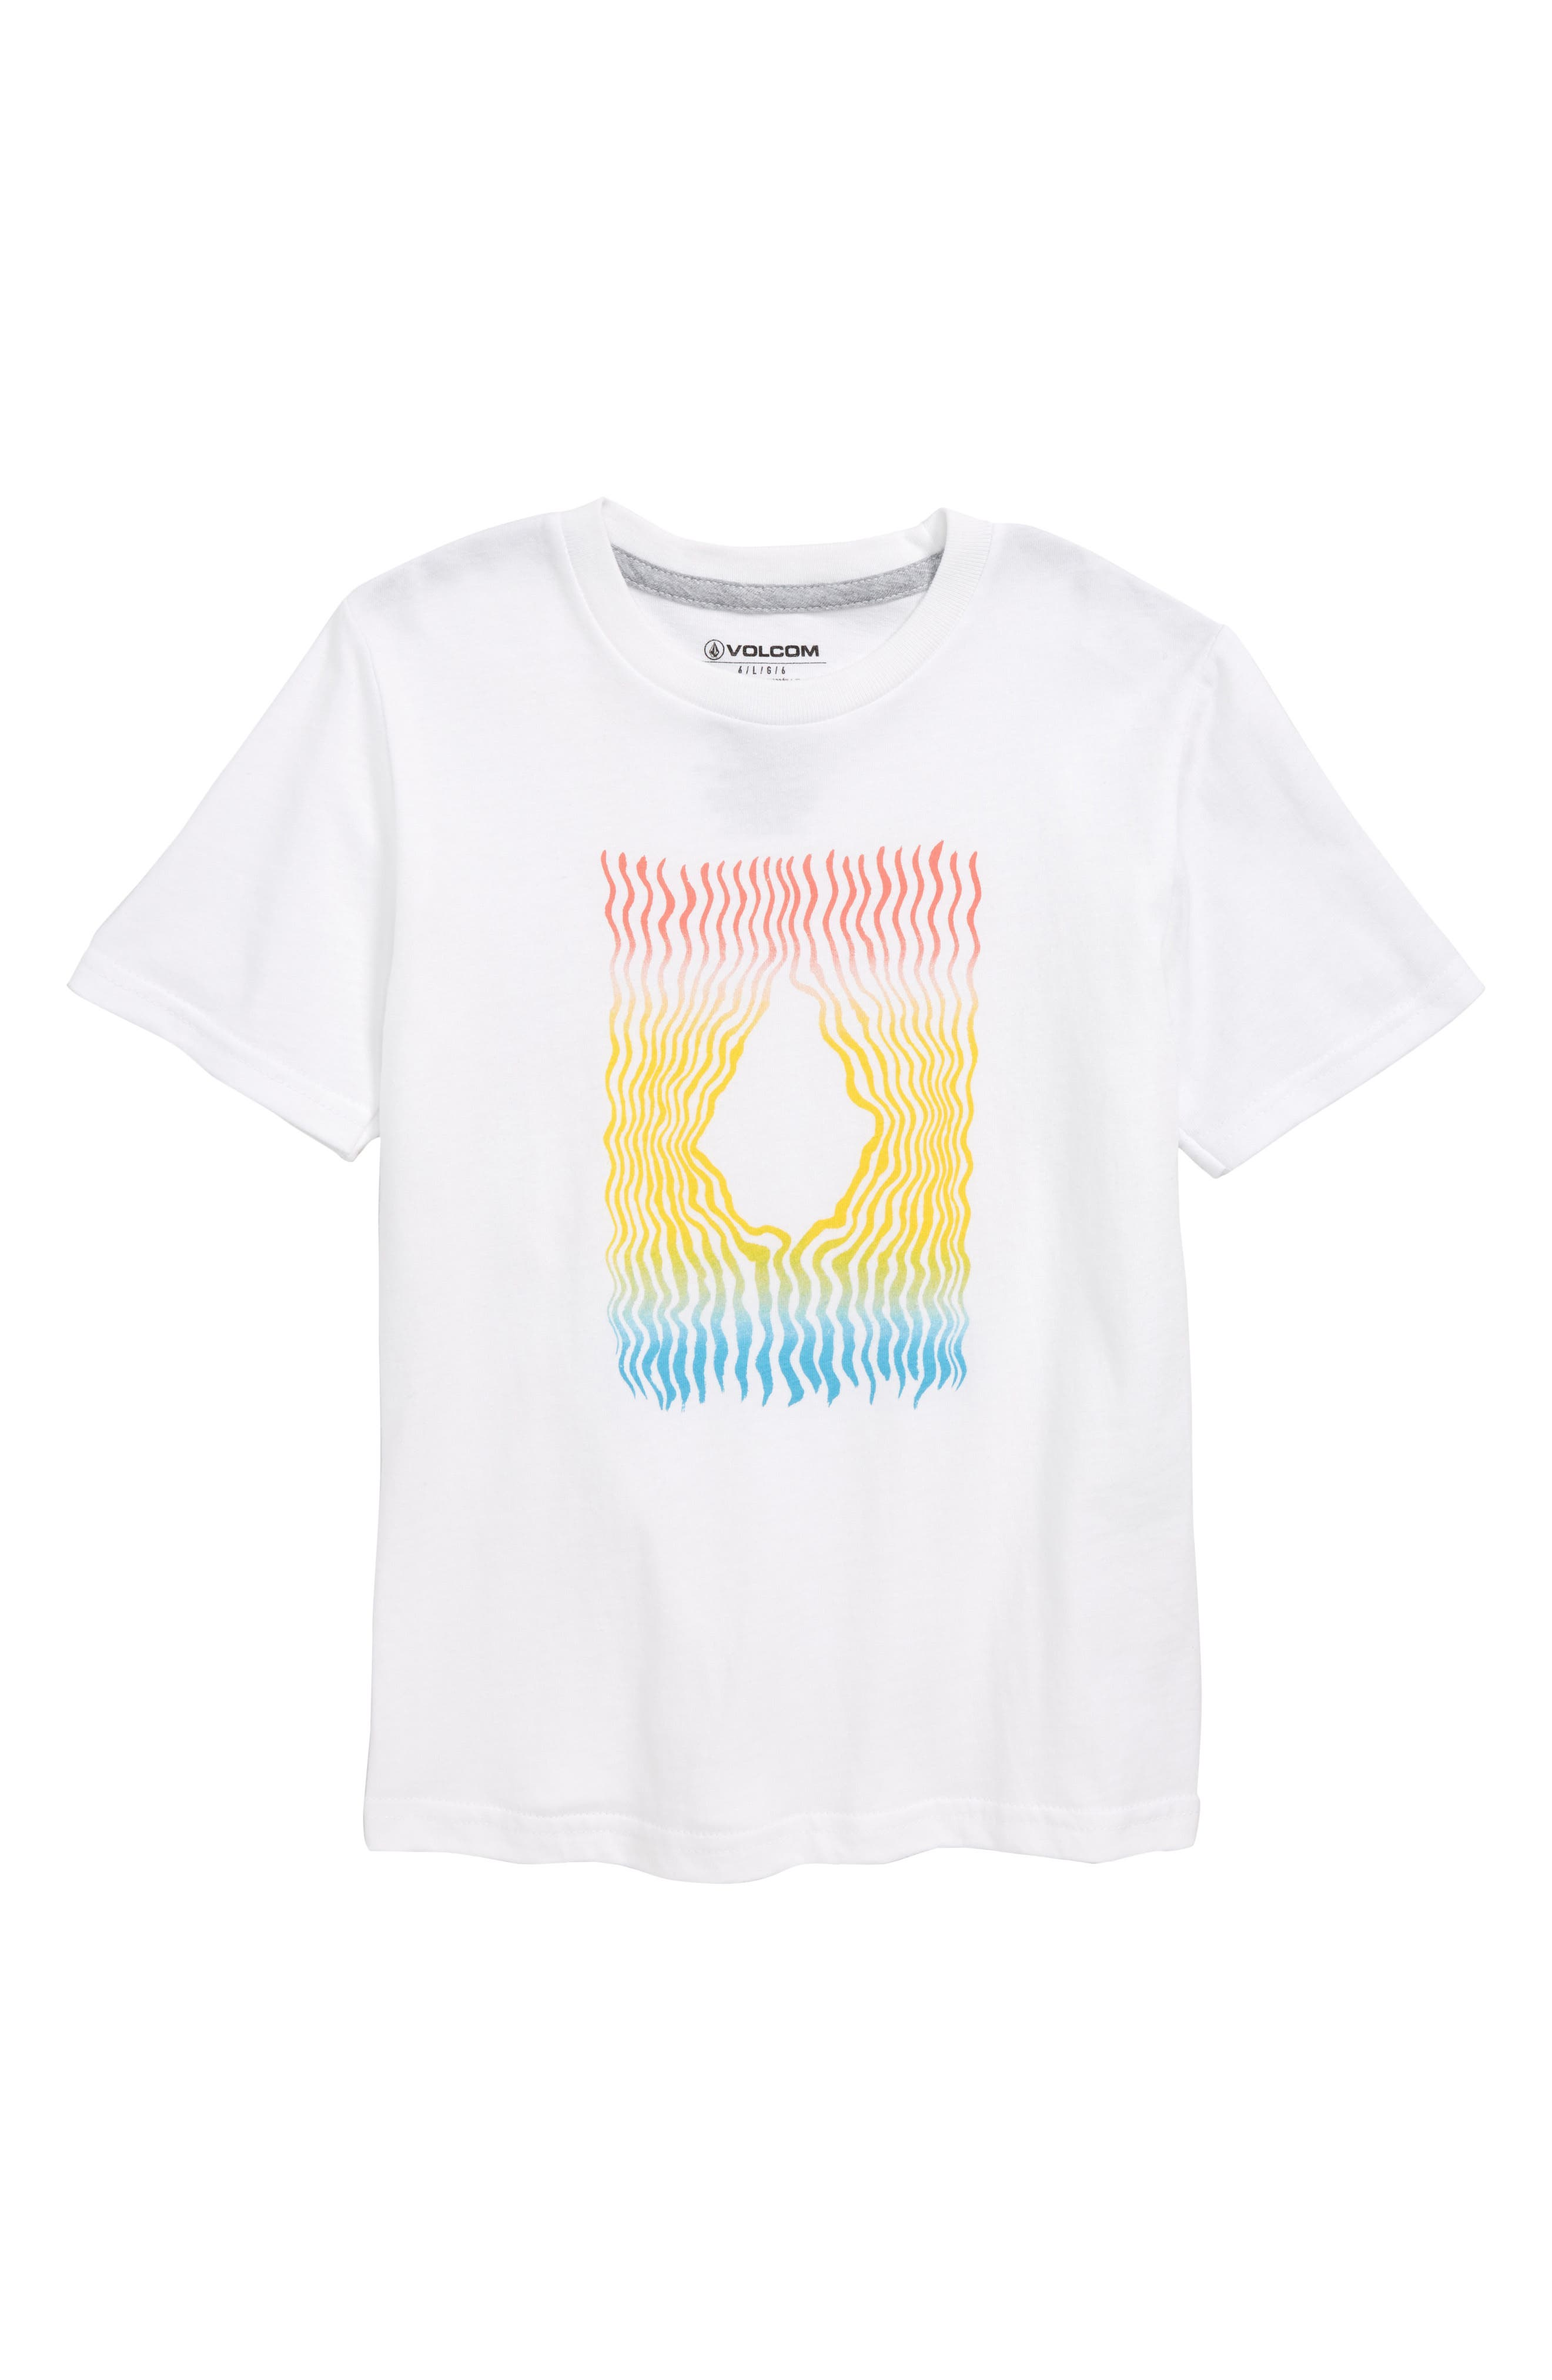 Wiggly Stone Graphic T-Shirt,                             Main thumbnail 1, color,                             WHITE